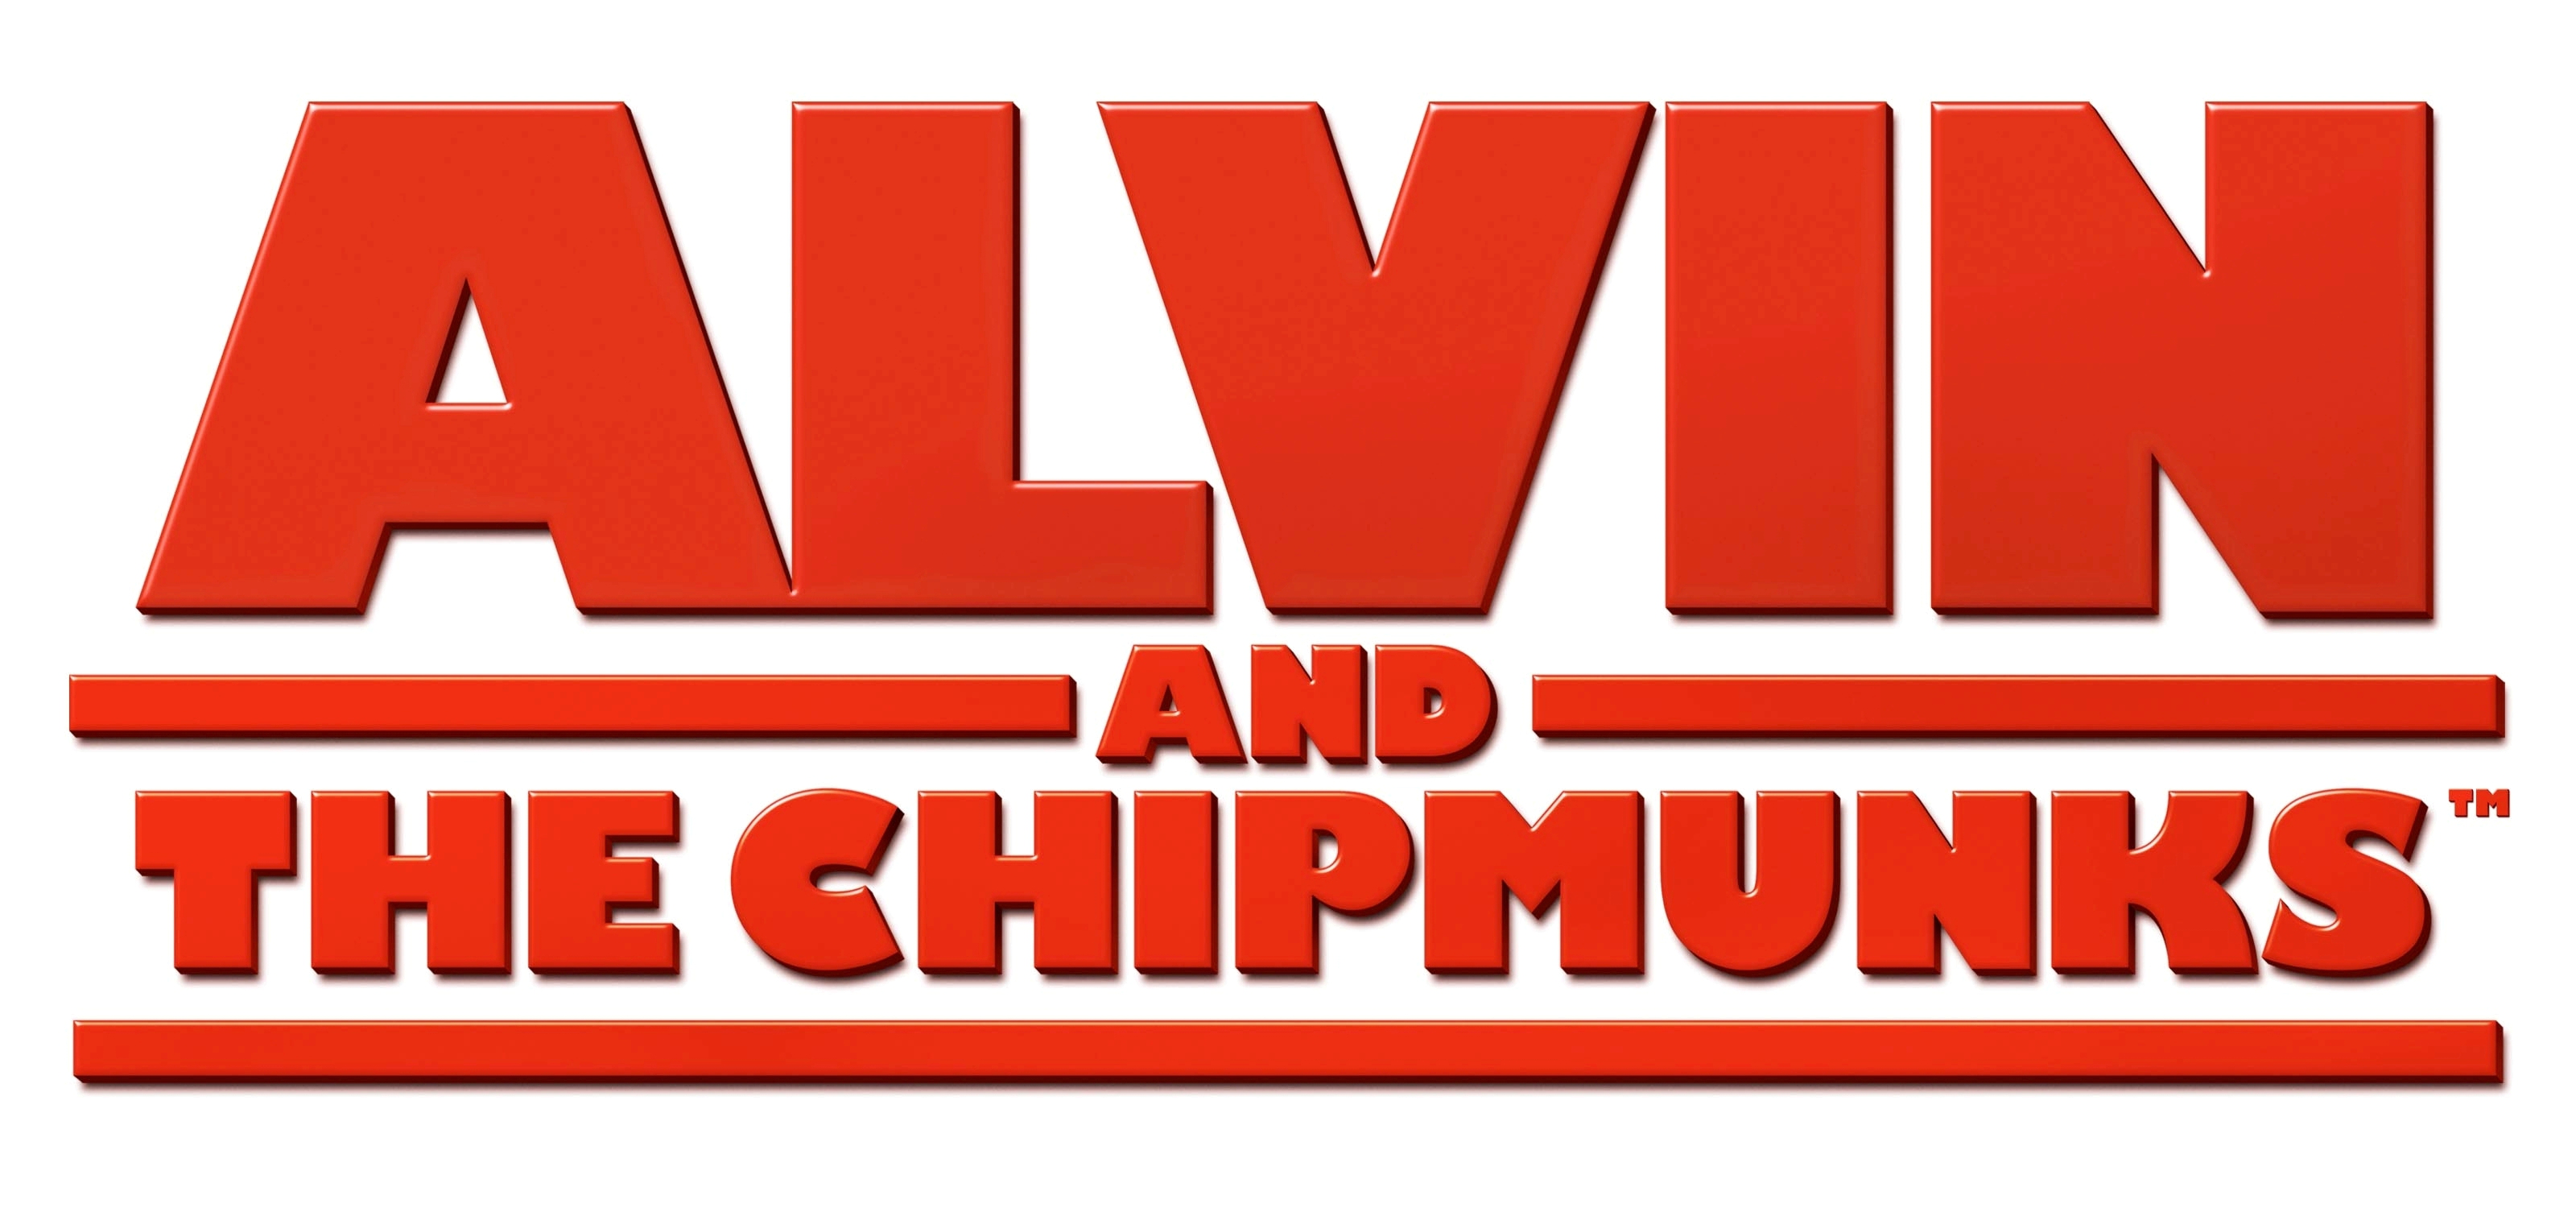 Clipart for u: Alvin and the chipmunks